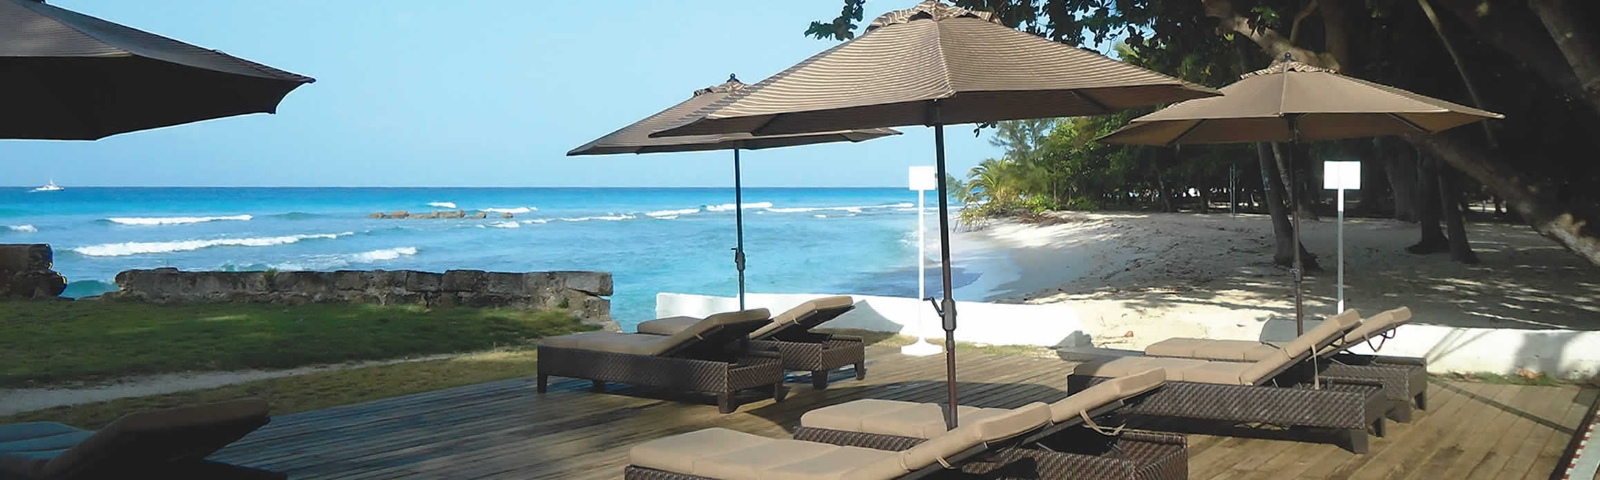 Exclusive Holidays Exclusive Hotels Holiday Deals Virgin